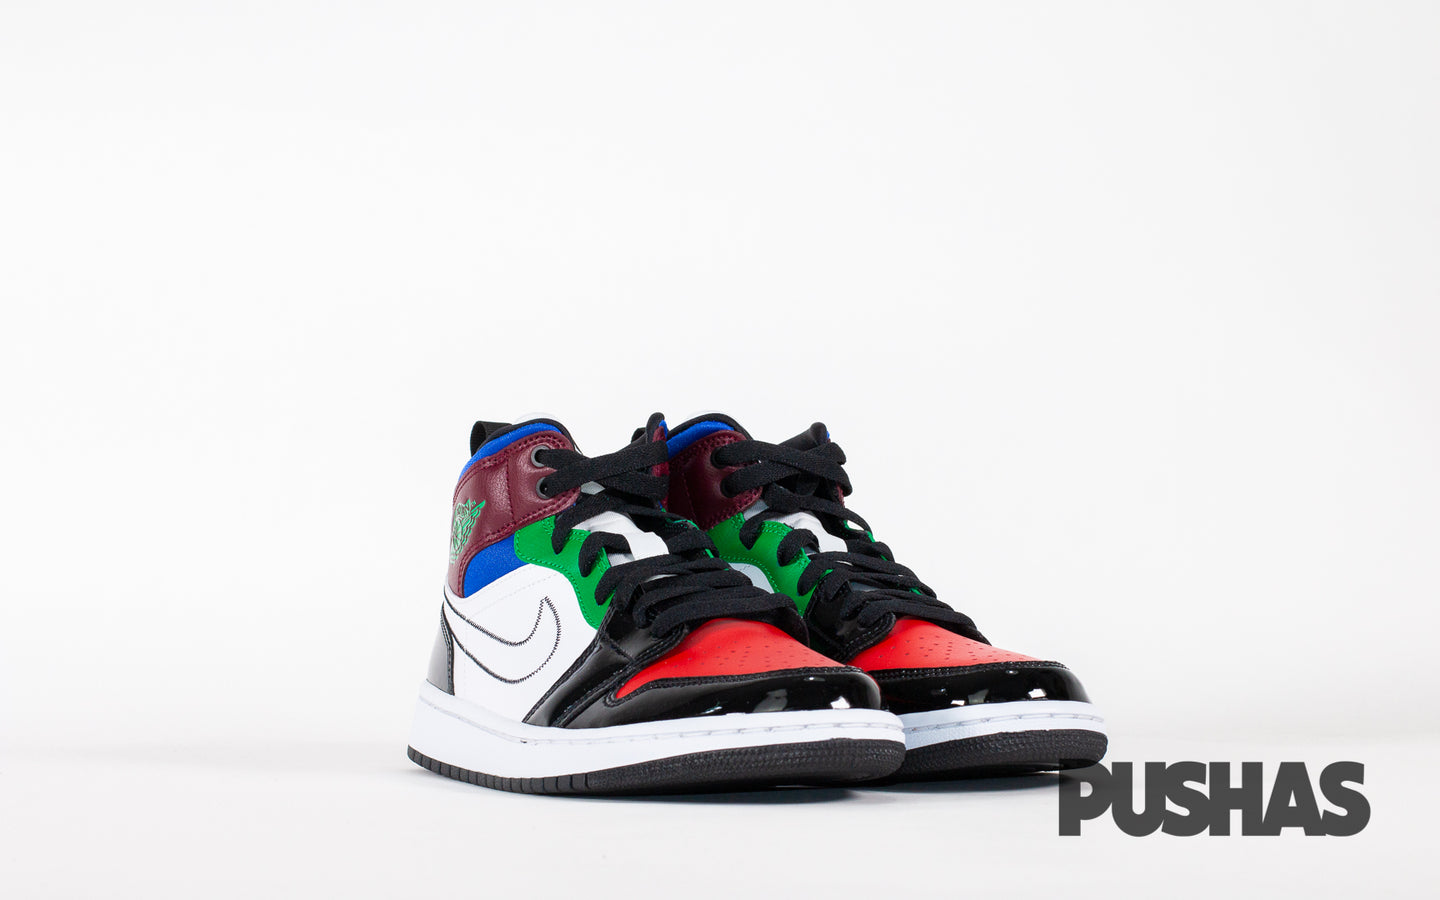 pushas-nike-Air-Jordan-1-Mid-W-SE-Black-White-Multi-Color